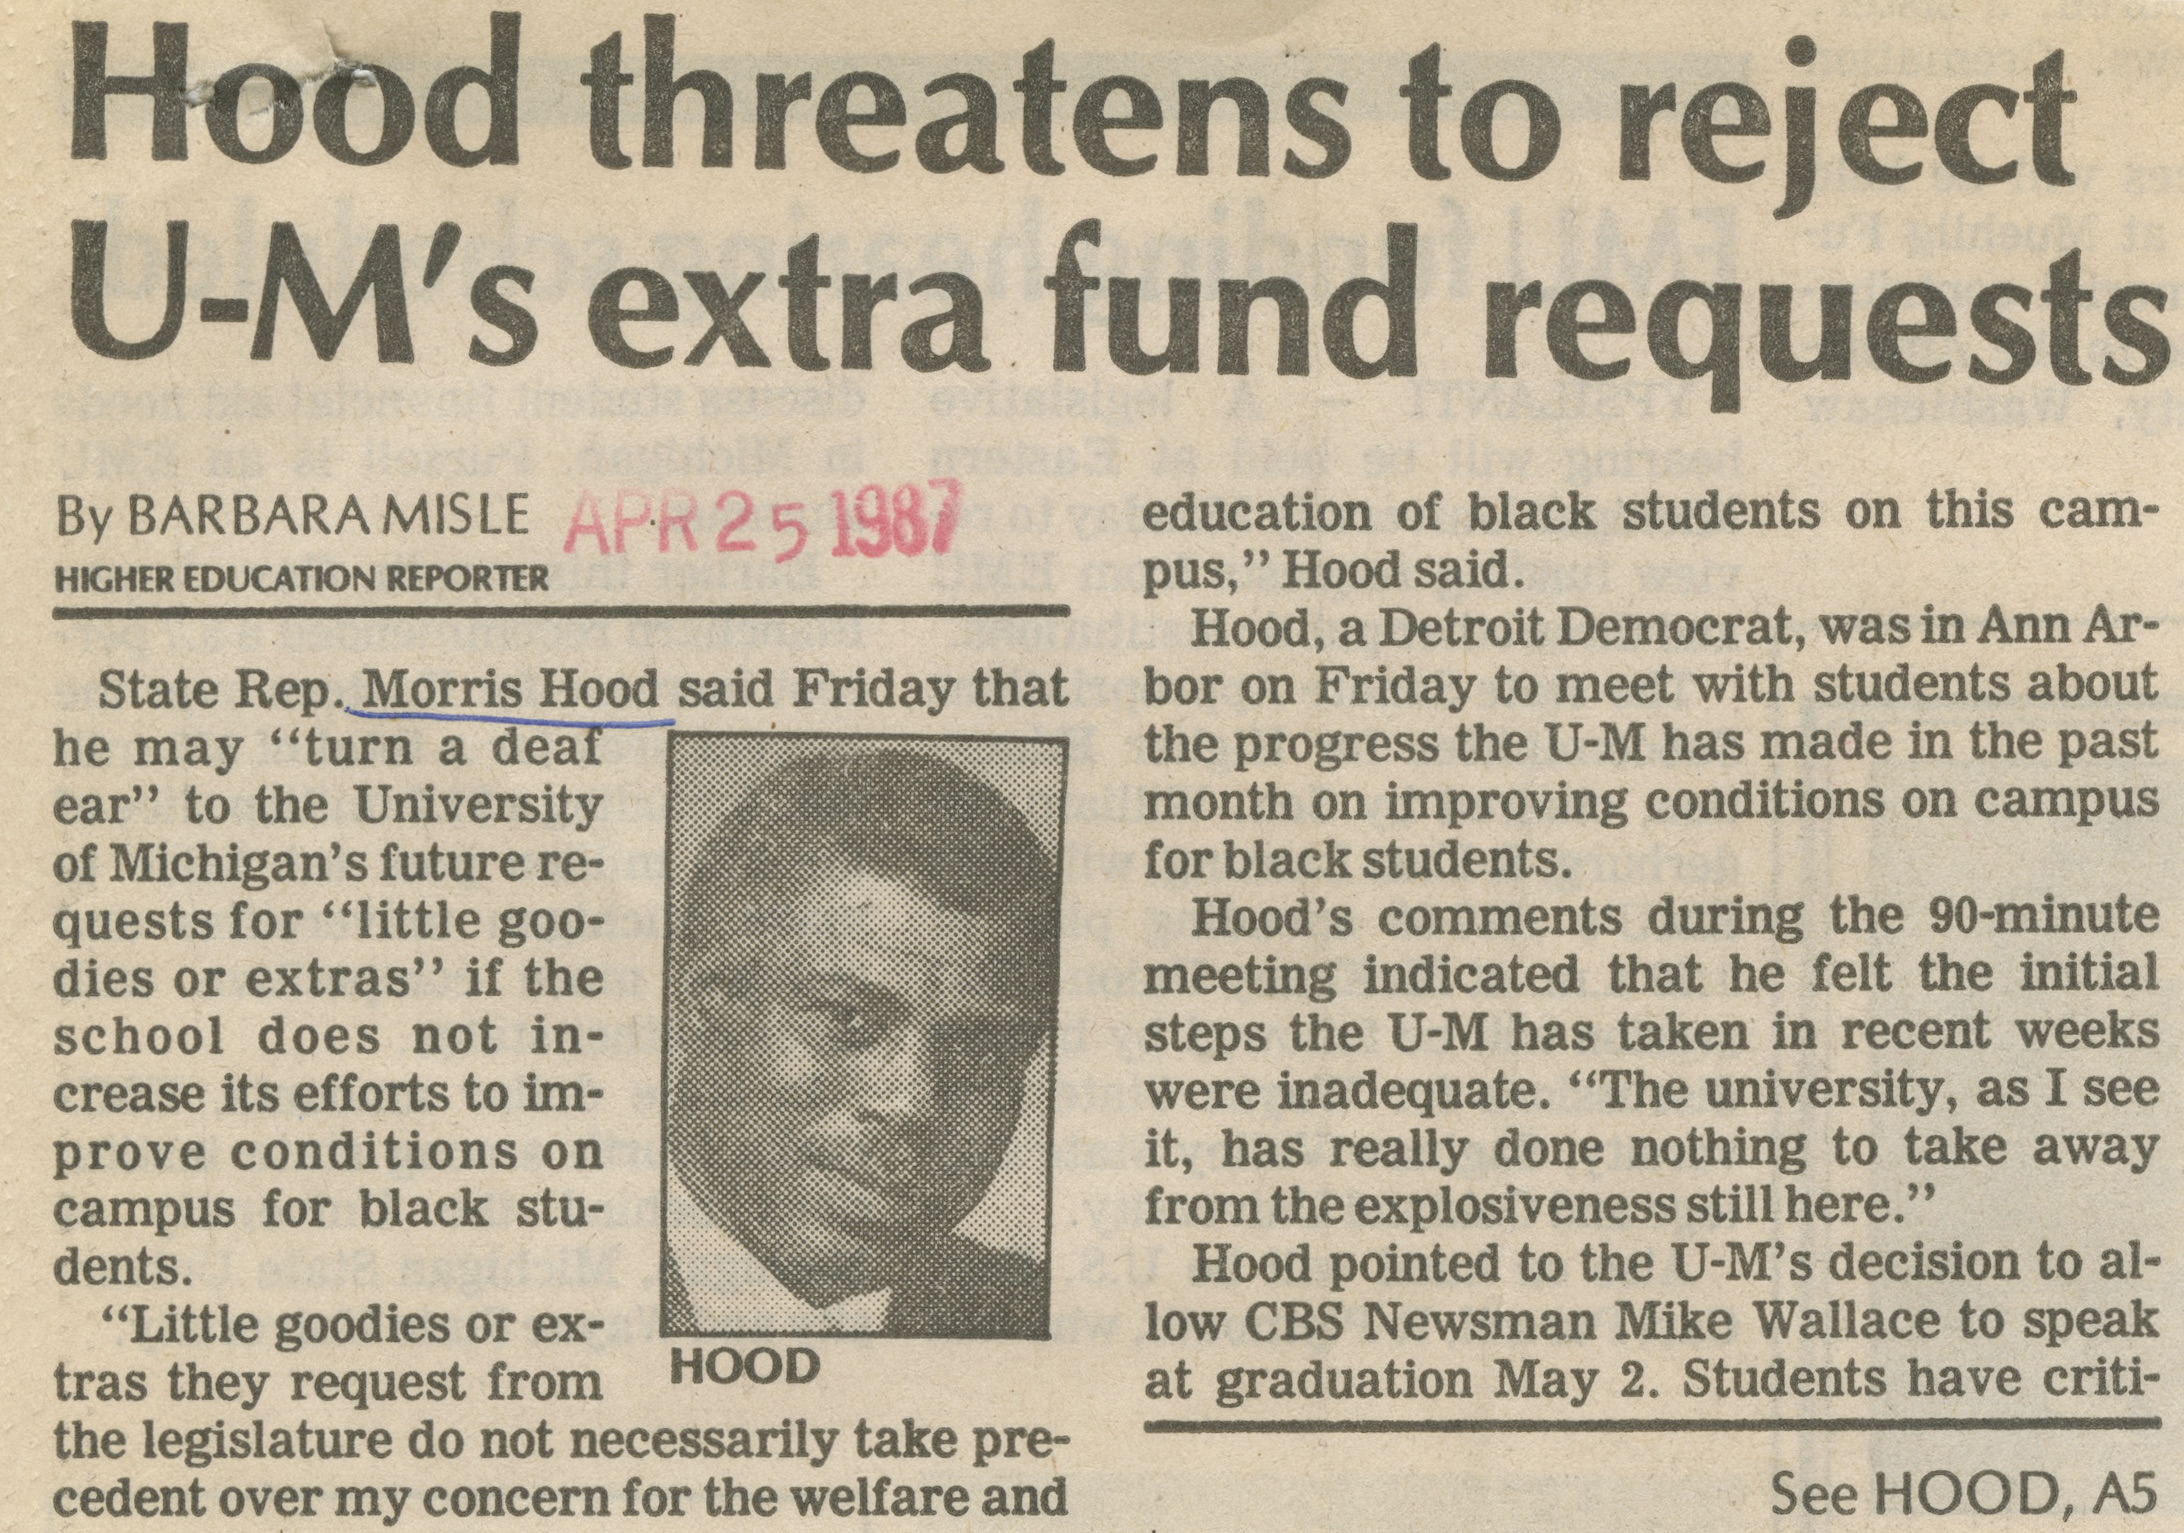 Hood Threatens To Reject U-M's Extra Fund Requests image